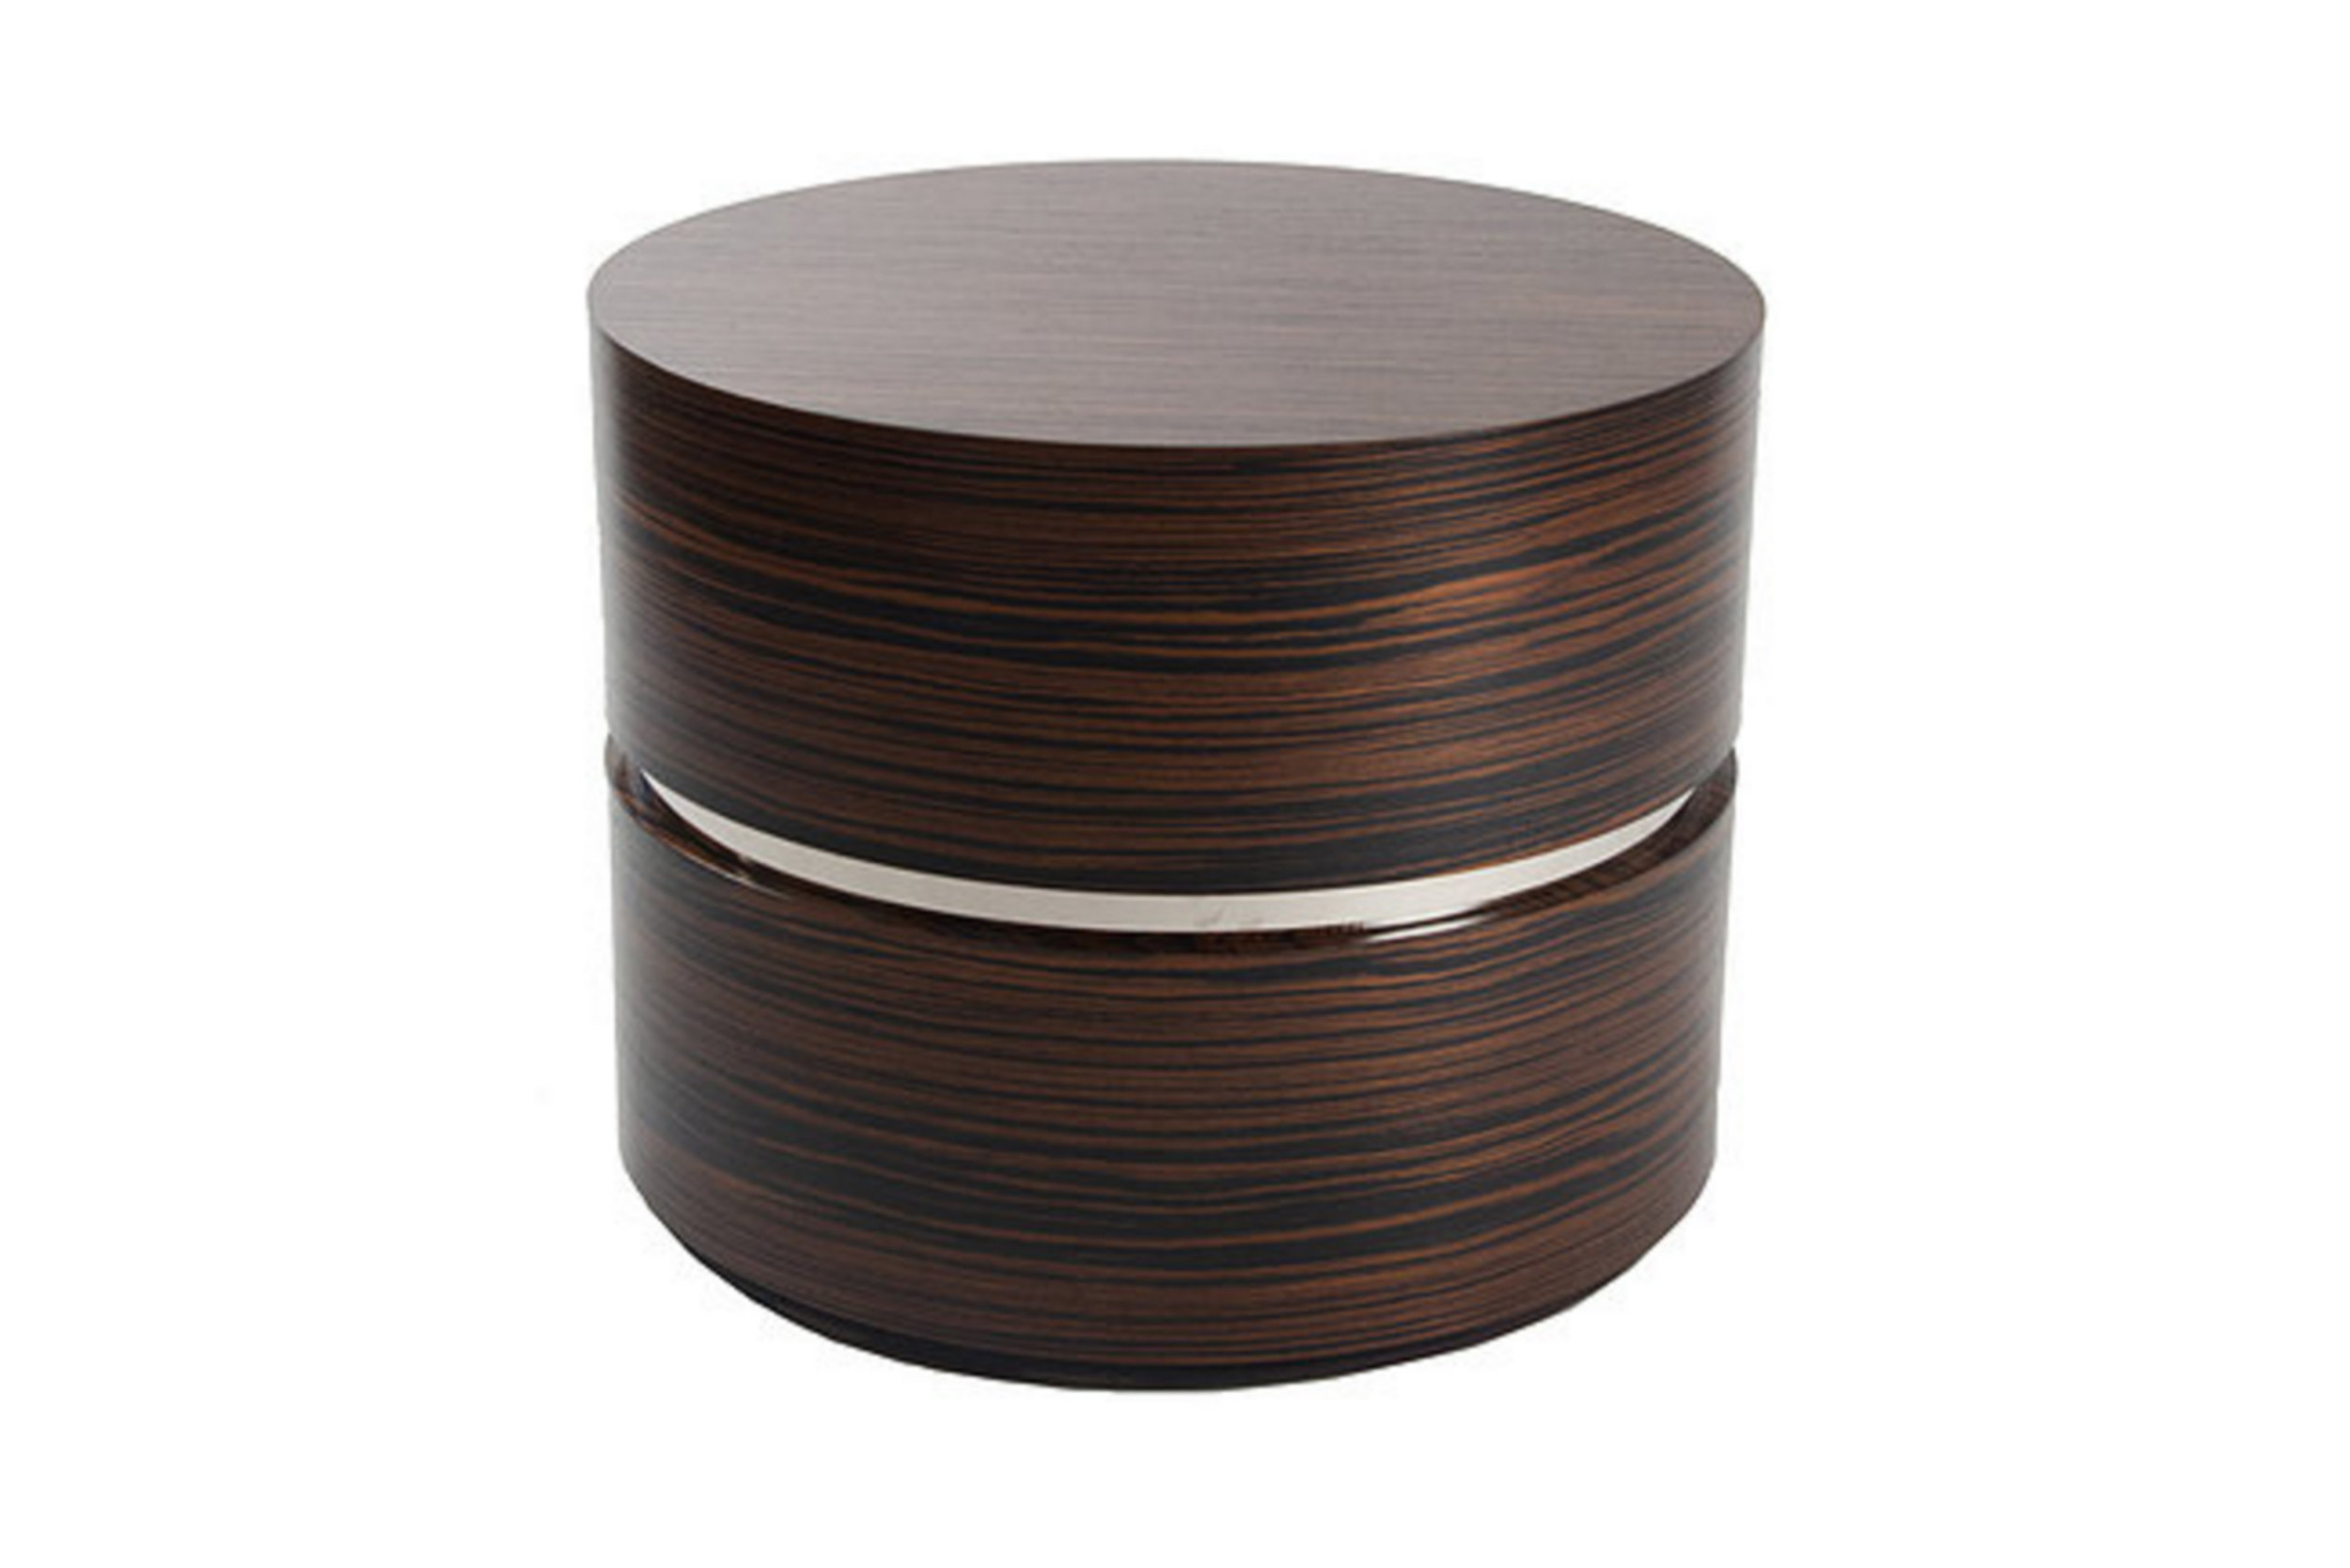 TWO TIER DRUM TABLE